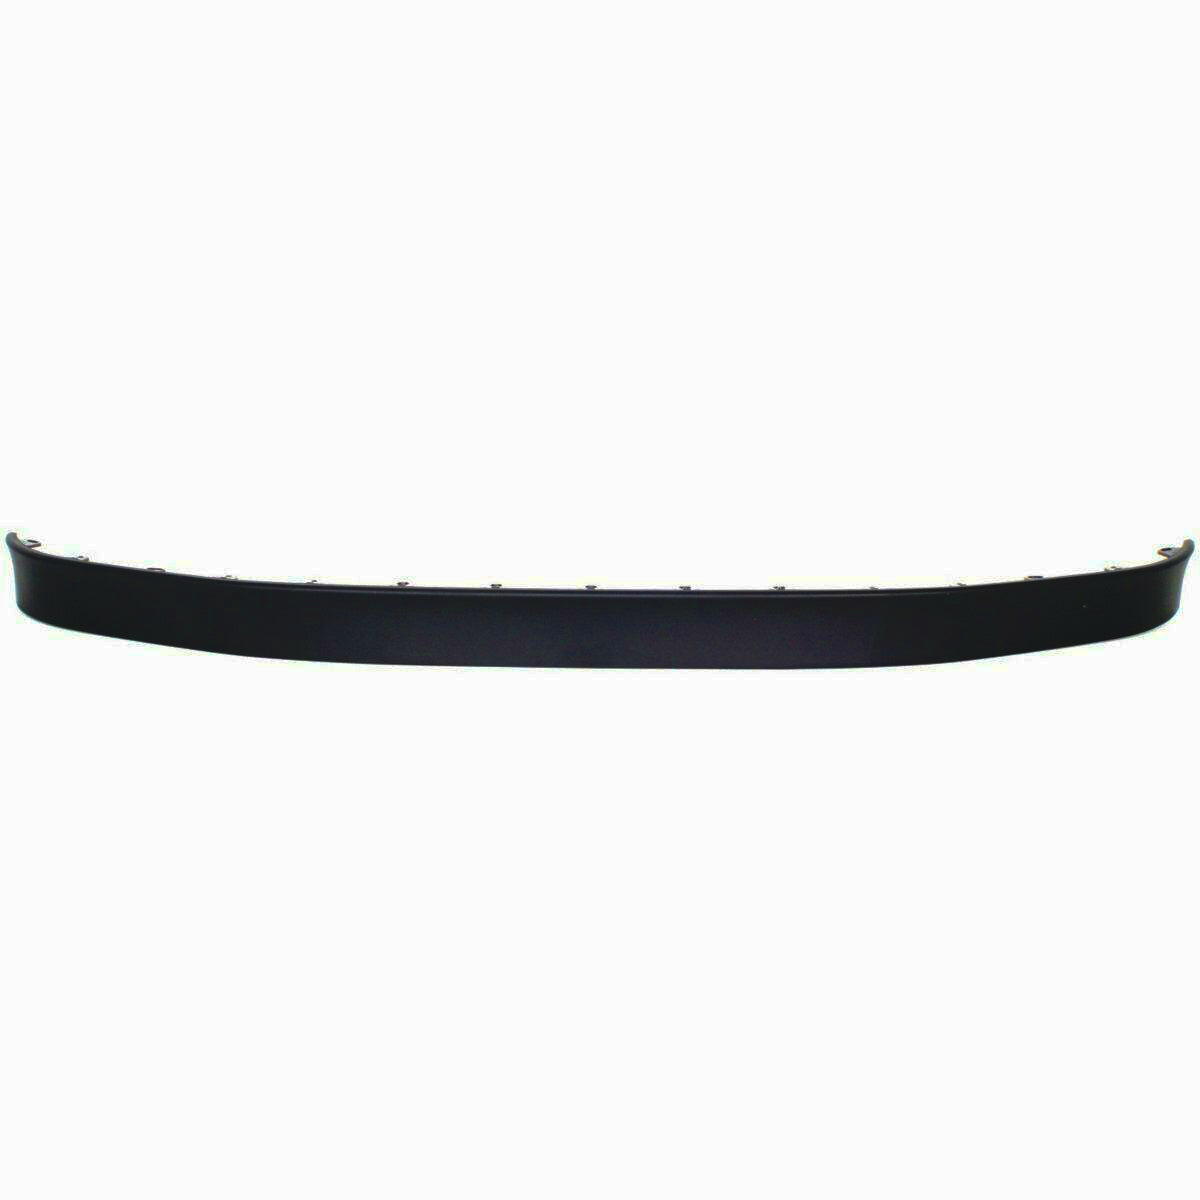 2007-2012 GMC Acadia Front Lower Bumper Extension